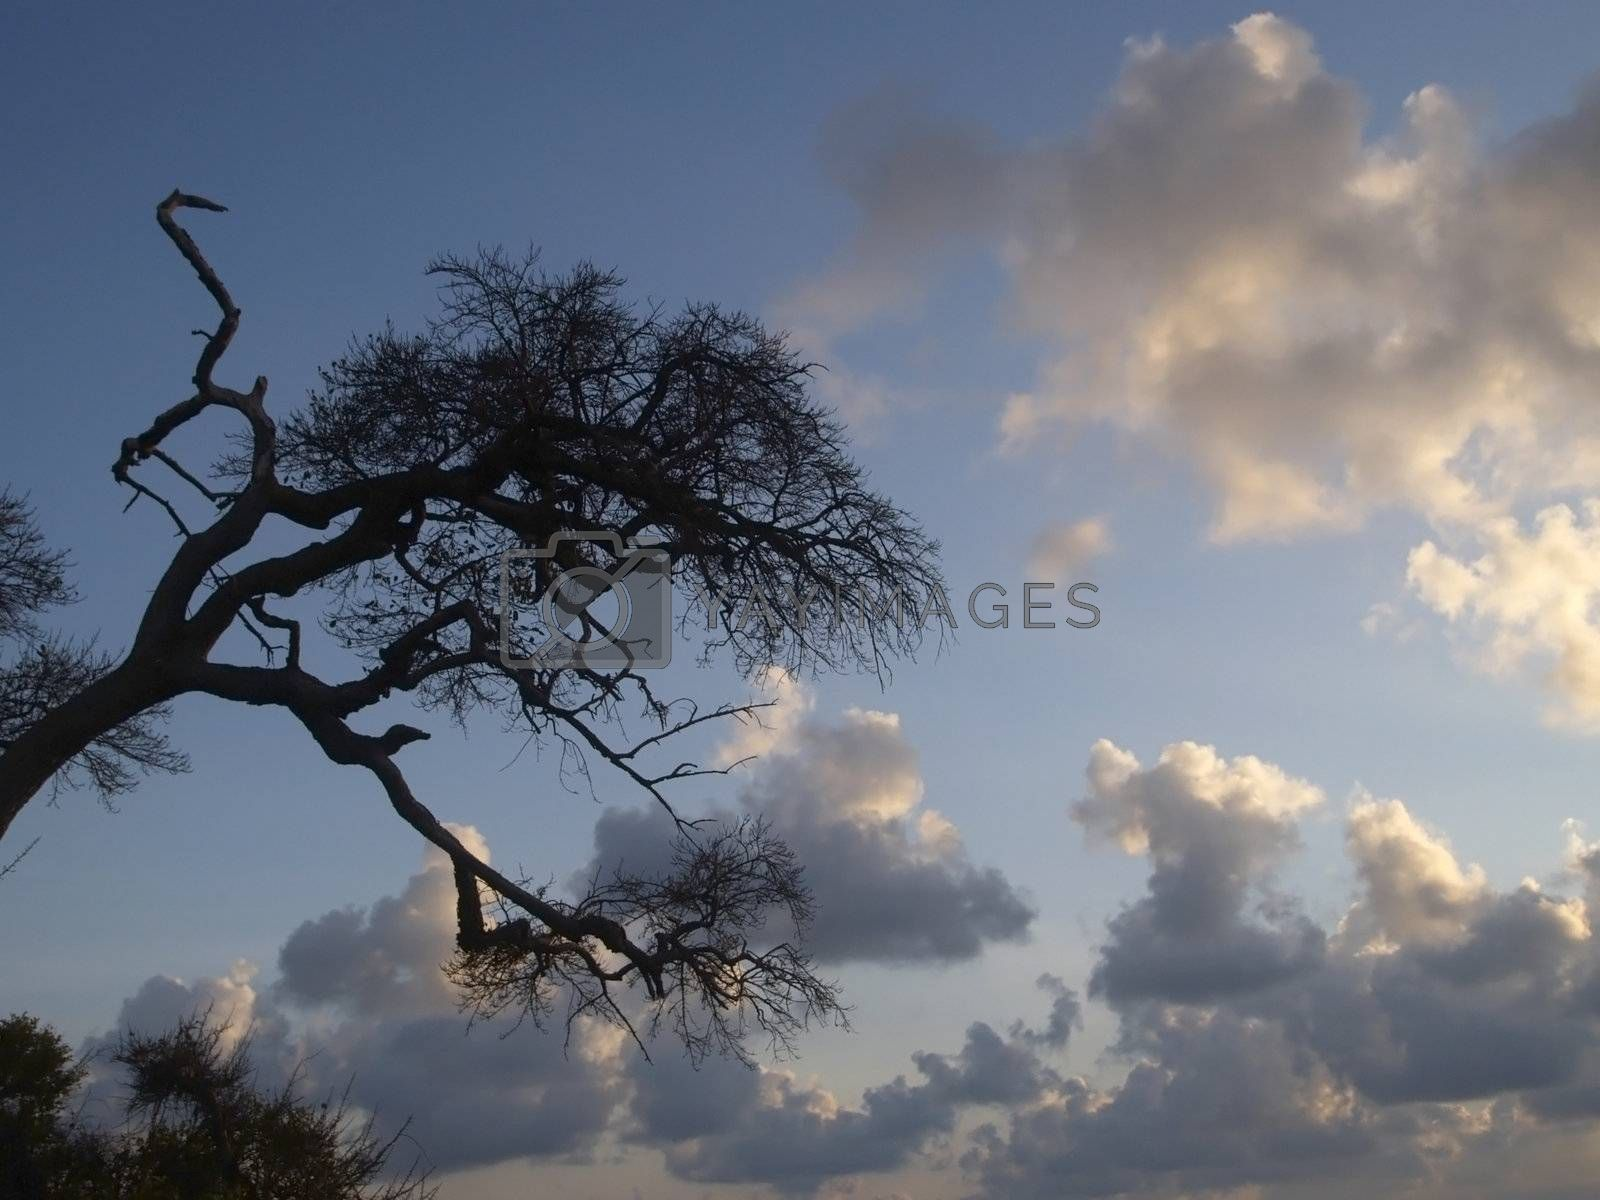 Tree and clouds by epixx